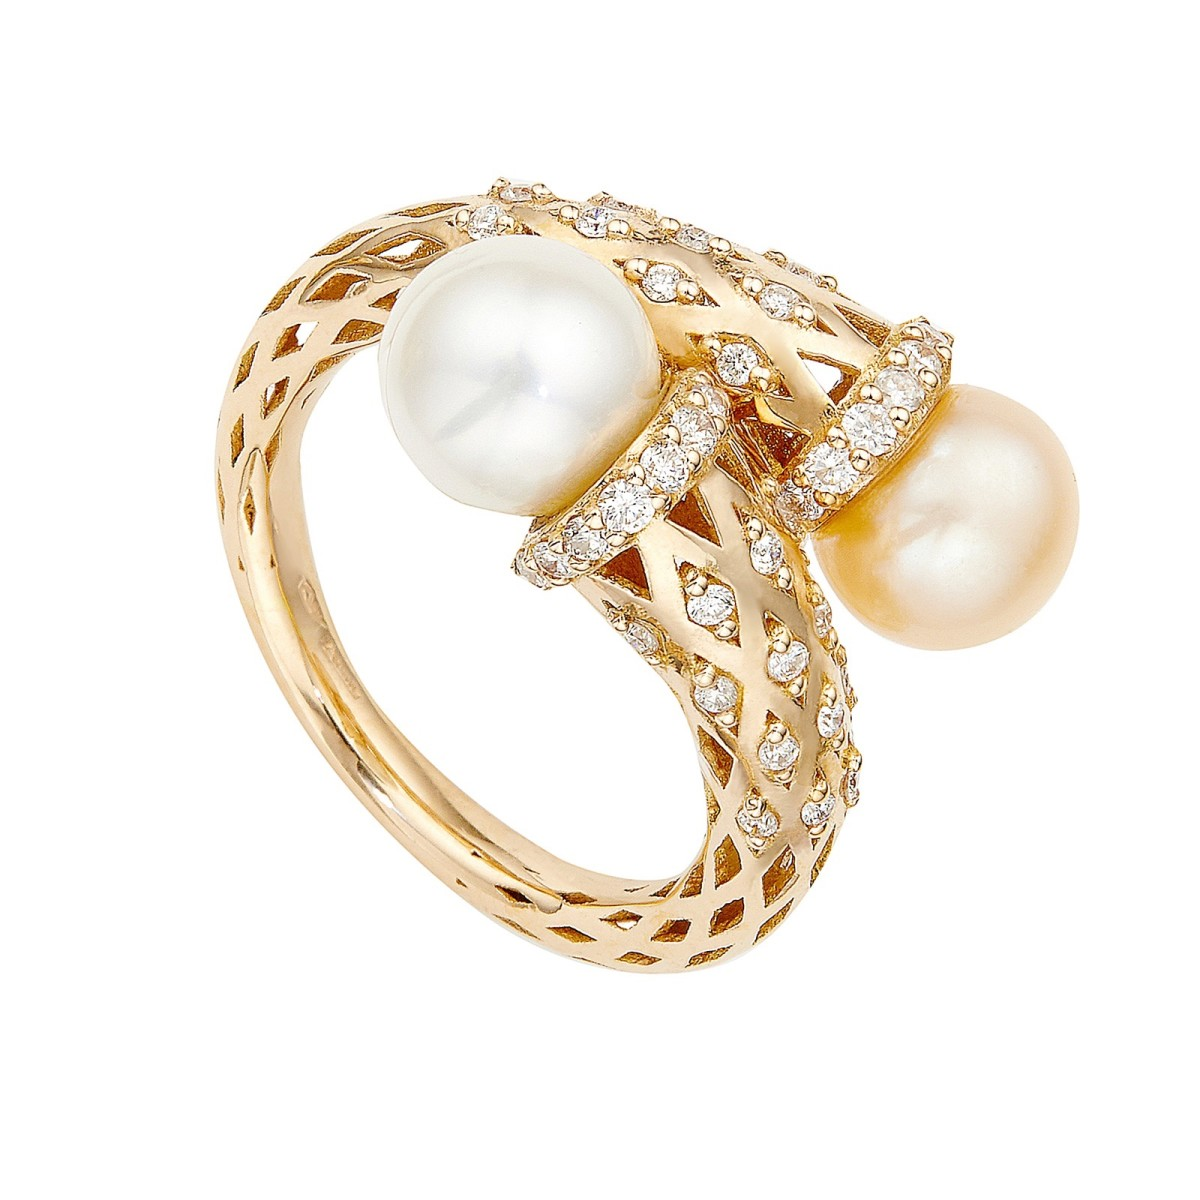 Pearlesque Ring by Sarah Ho